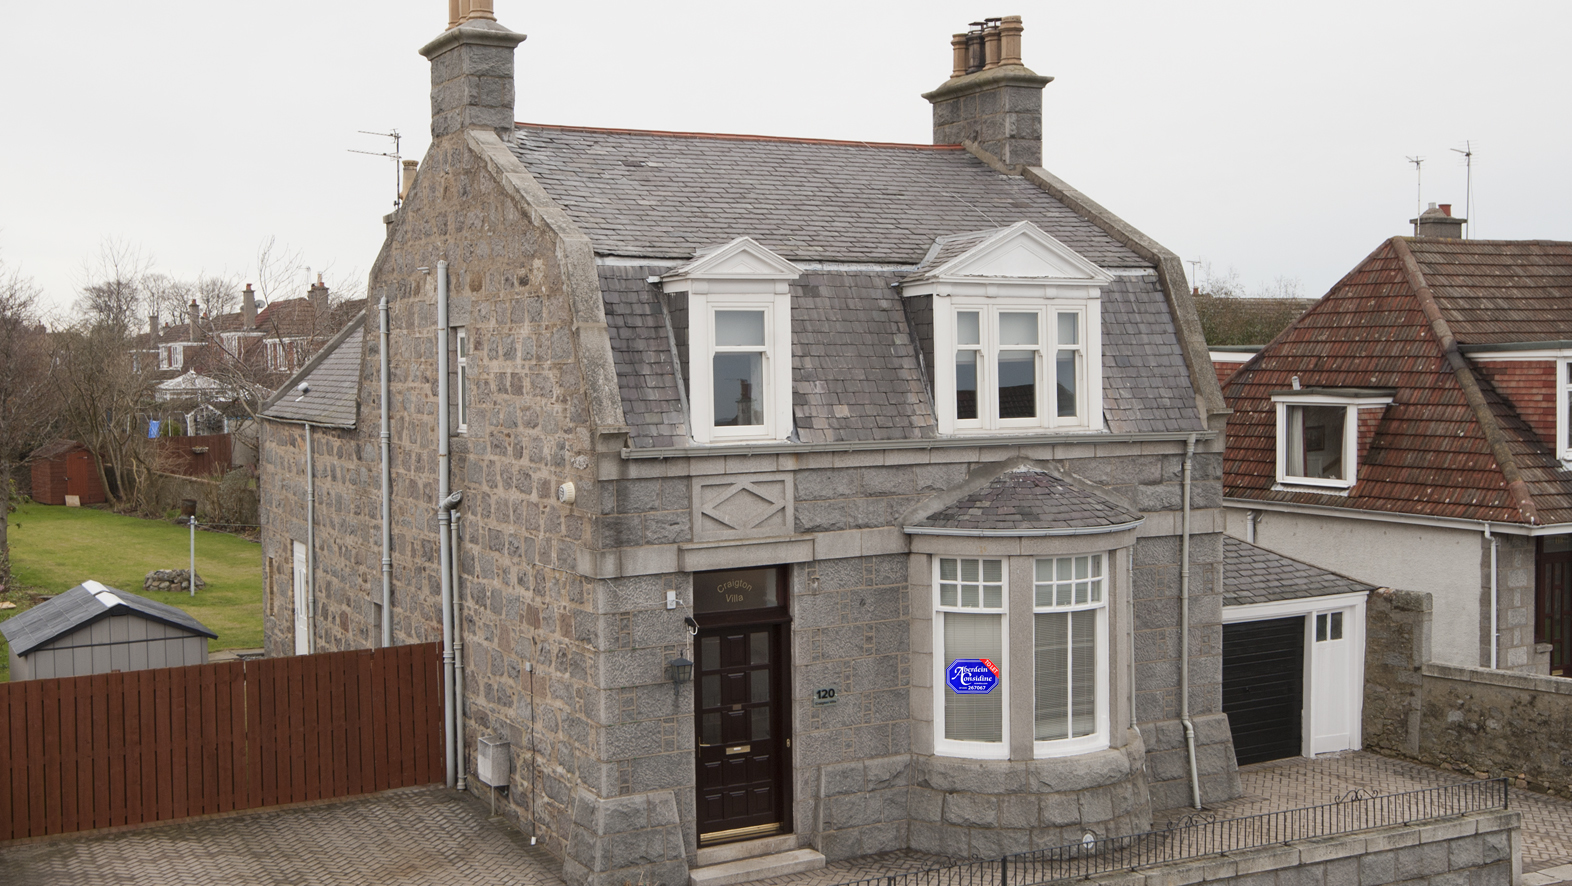 It's not often a house in Aberdeen's prestigious west end pops up on the leasing market.